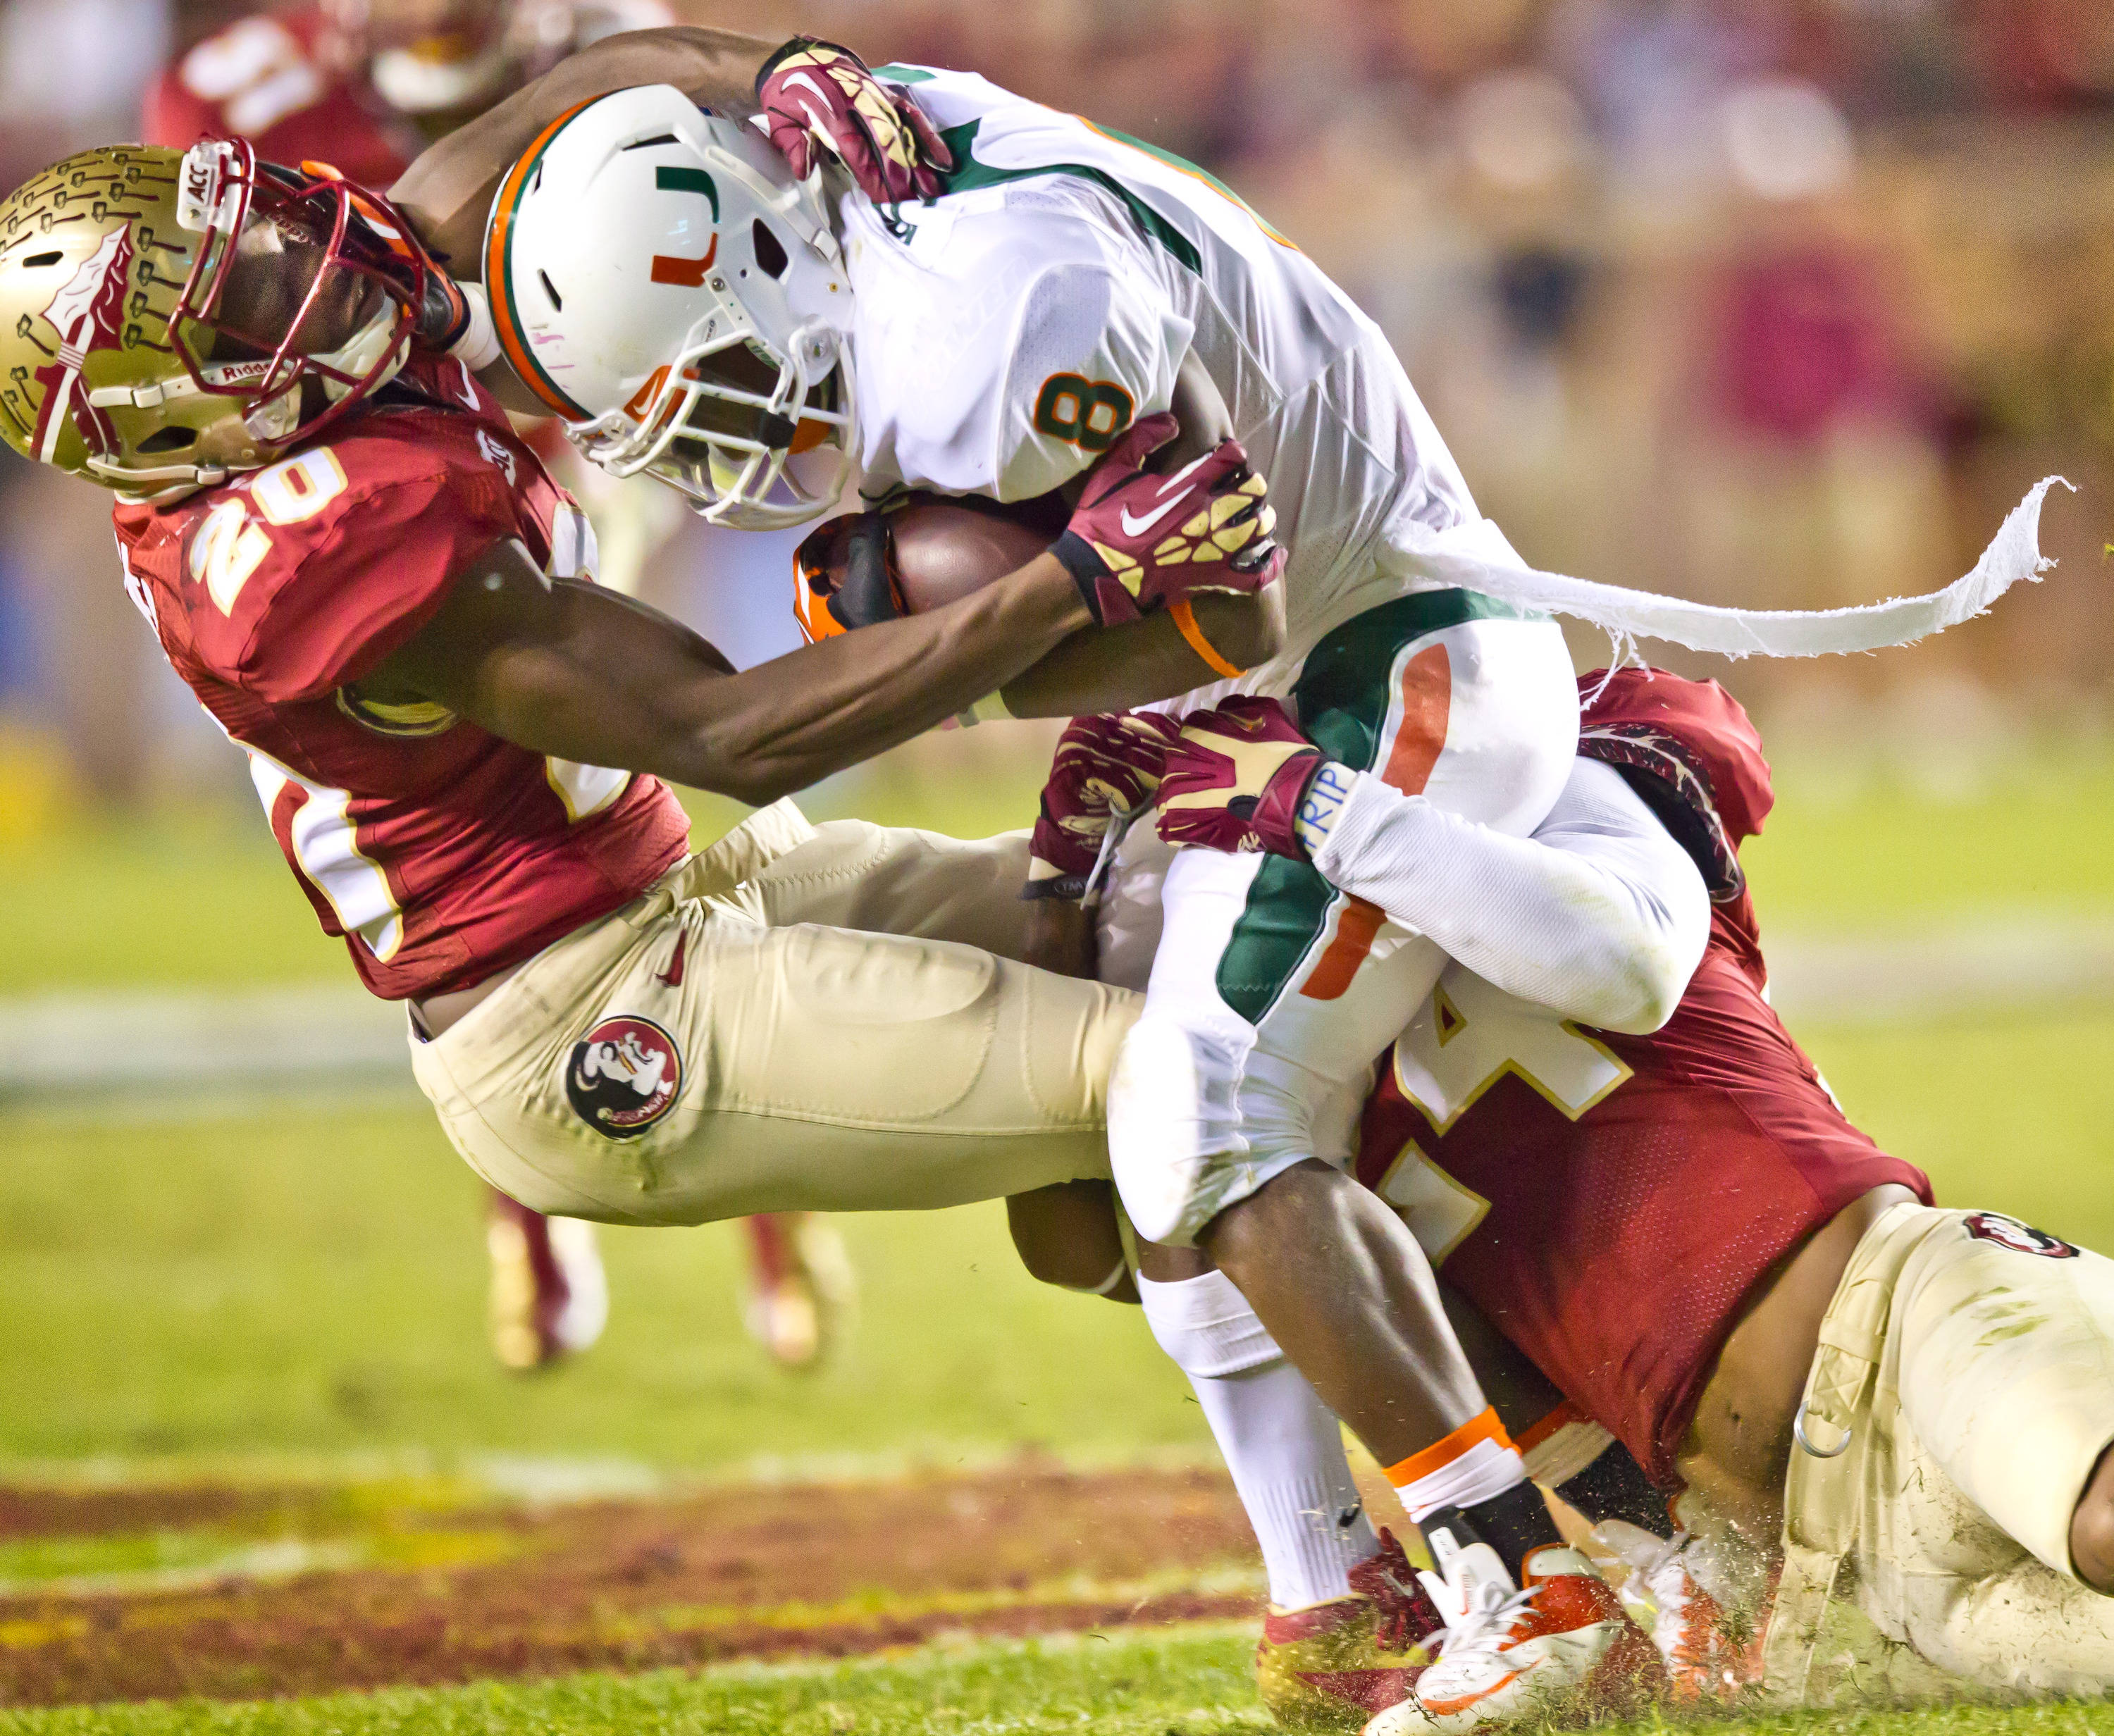 Lamarcus Joyner (20)and Terrance Smith (24) bring down the Canes' Duke Johnson.